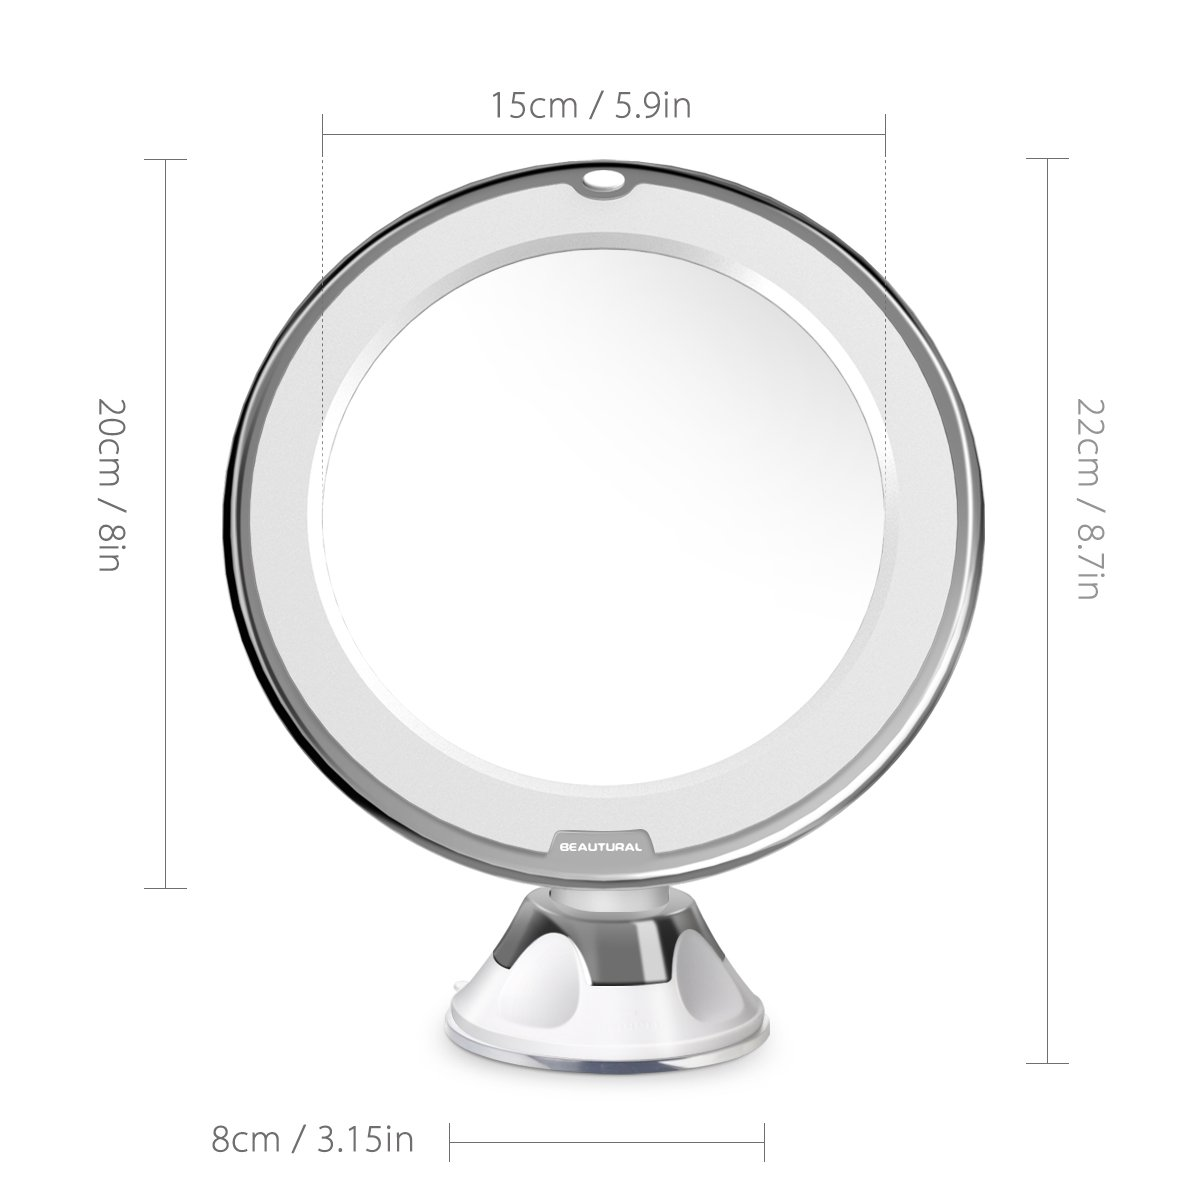 Beautural 10X Magnifying Lighted Vanity Makeup Mirror with Natural White LED, 360 Degree Swivel Rotation and Locking Suction by Beautural (Image #8)